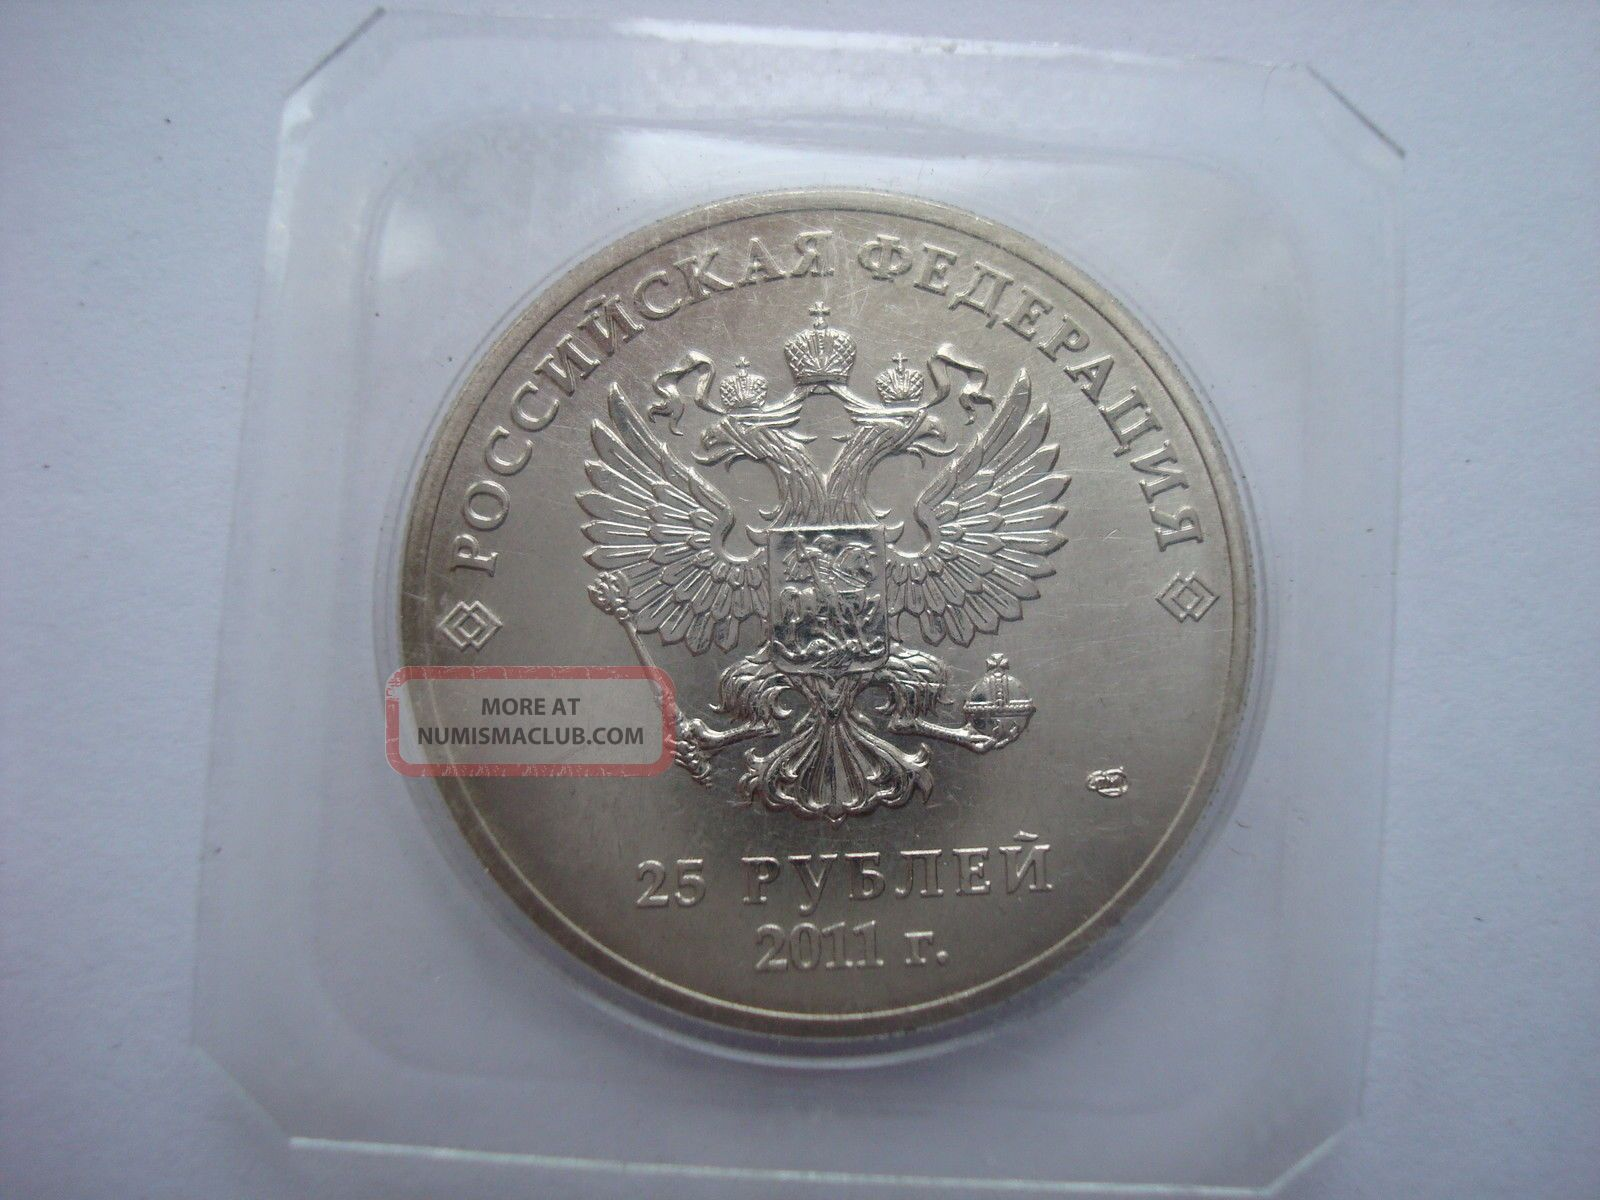 RUSSIA 25 RUBLES 2011 coin Sochi Olympic Games Emblem Russia Russland UNC